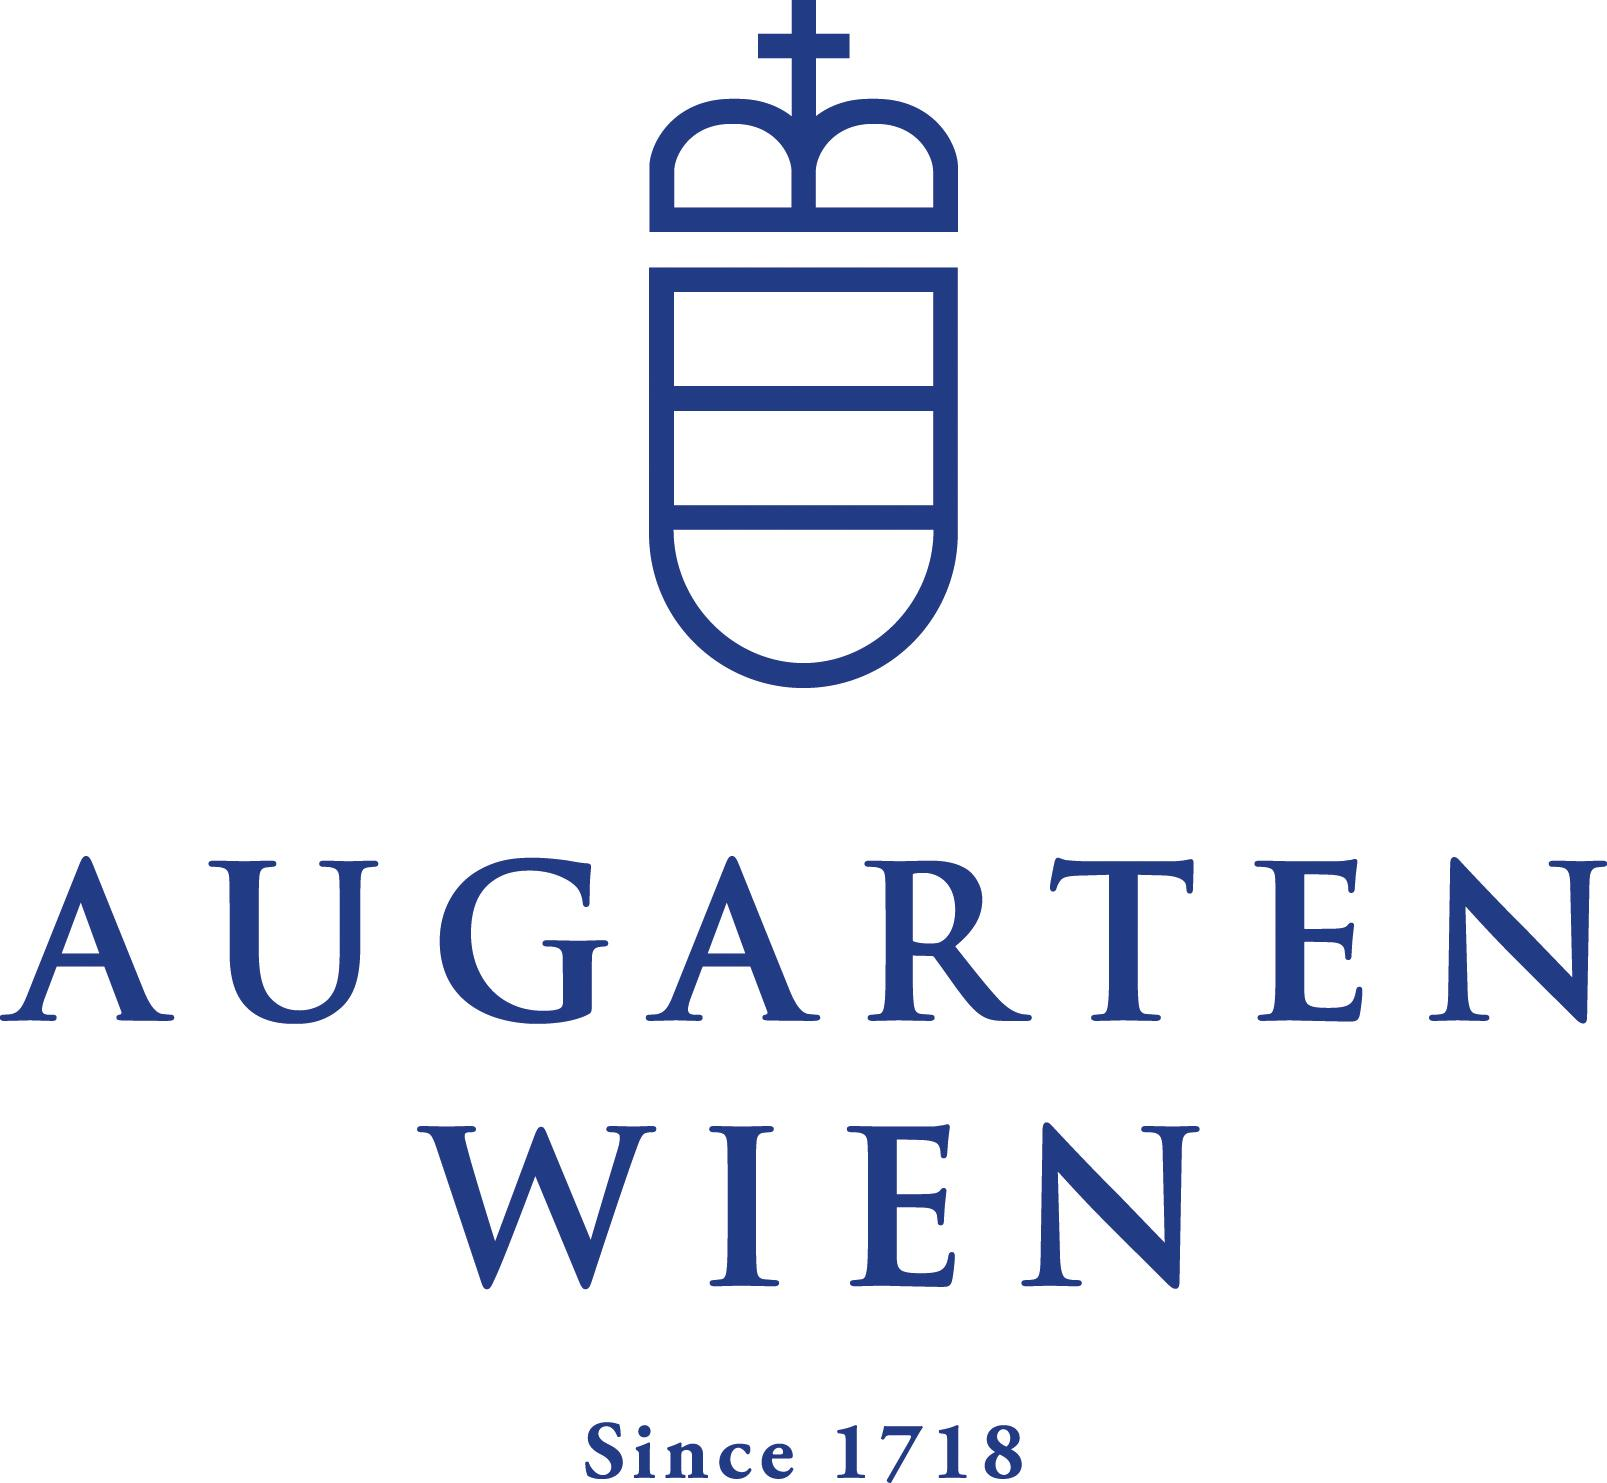 Logo of Augarten